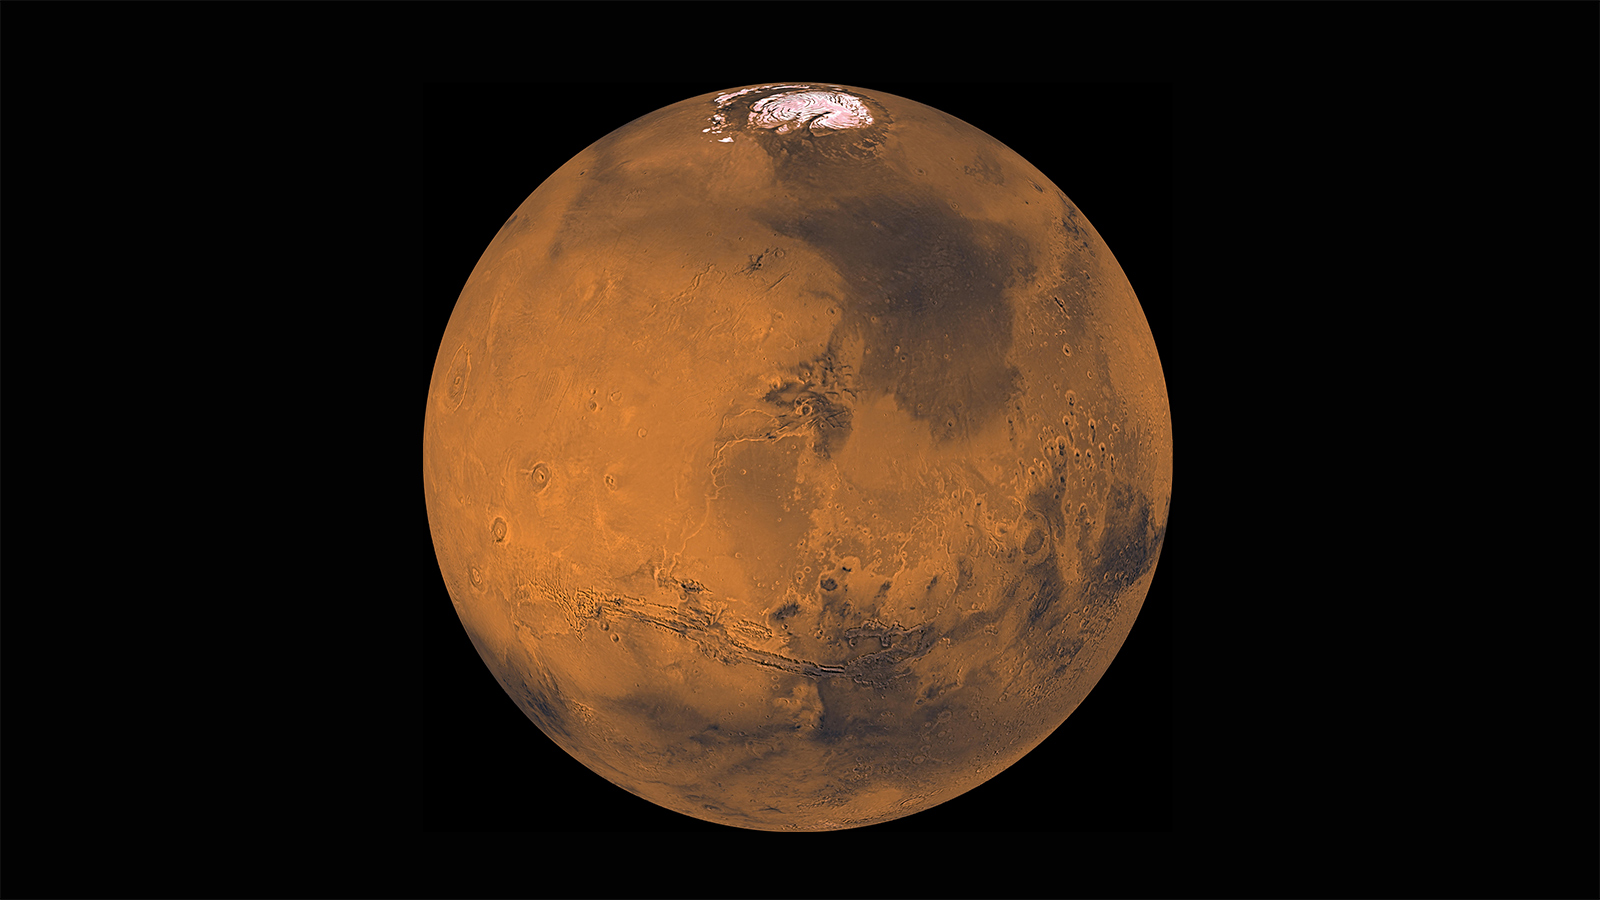 see the image 'NASA at Mars: 20 years of 24/7 exploration'